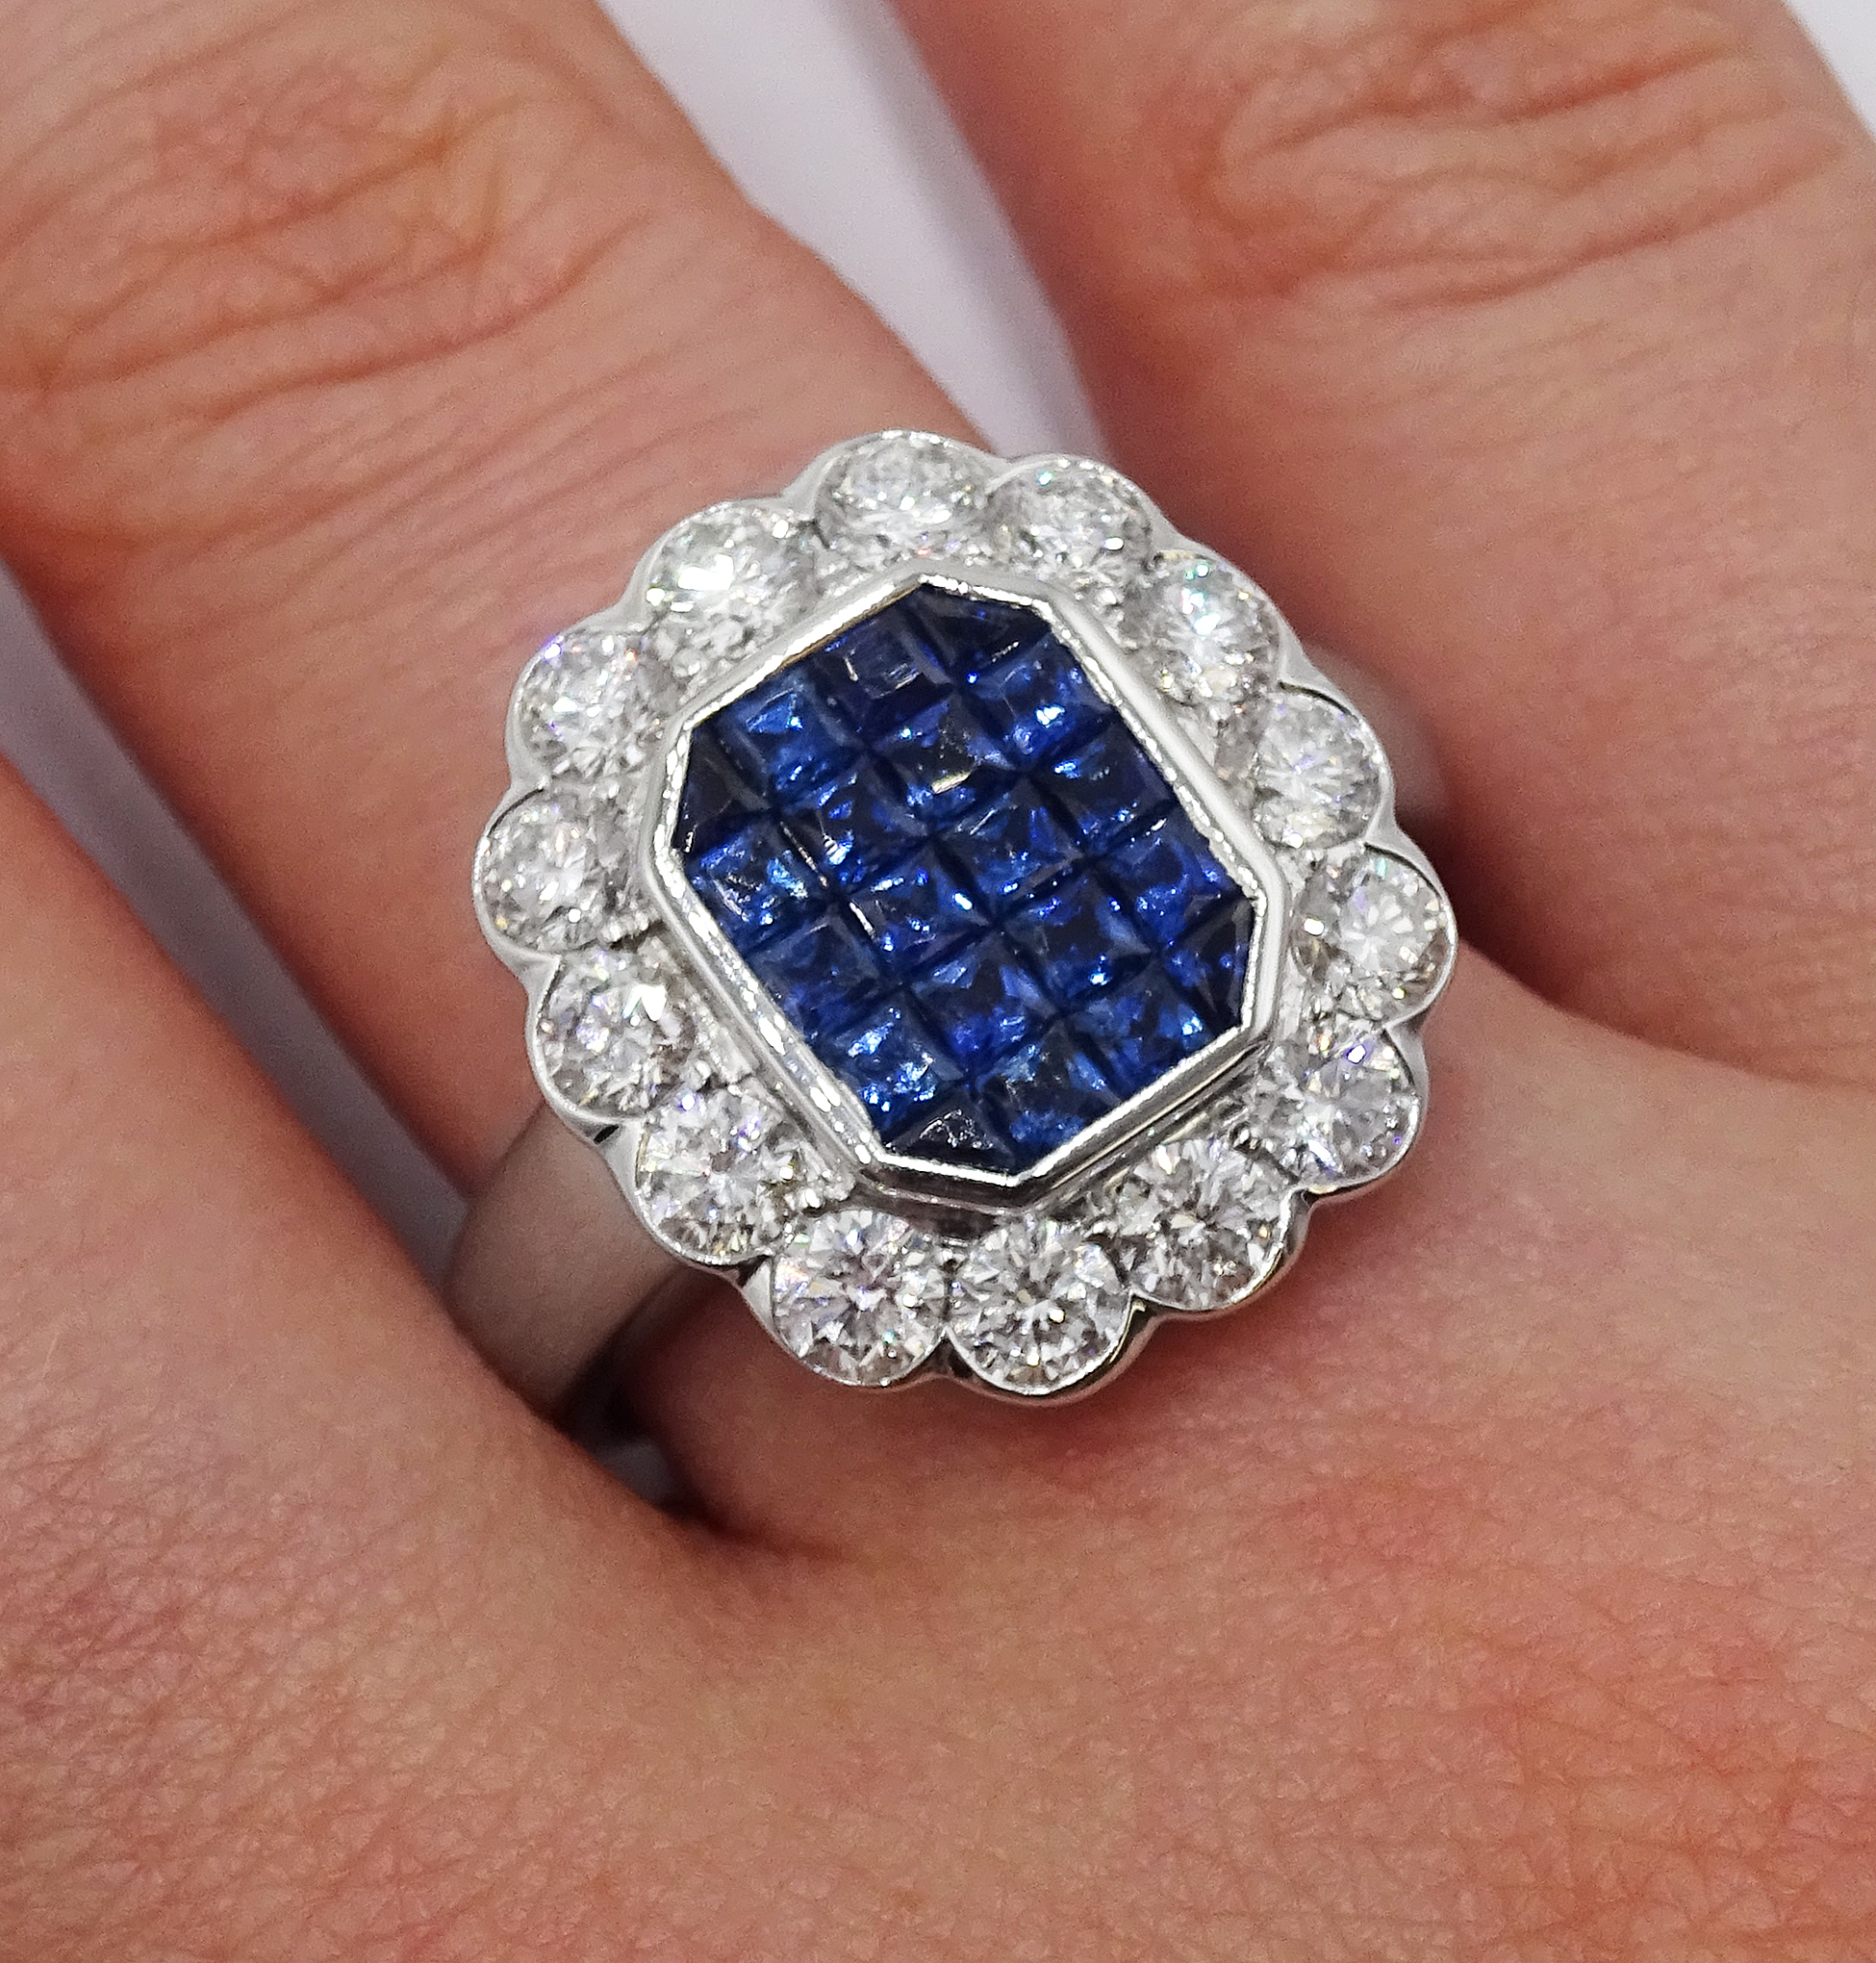 18ct white gold, sapphire and diamond cluster ring, sapphire total weight 2.10 carat, diamond - Image 2 of 5